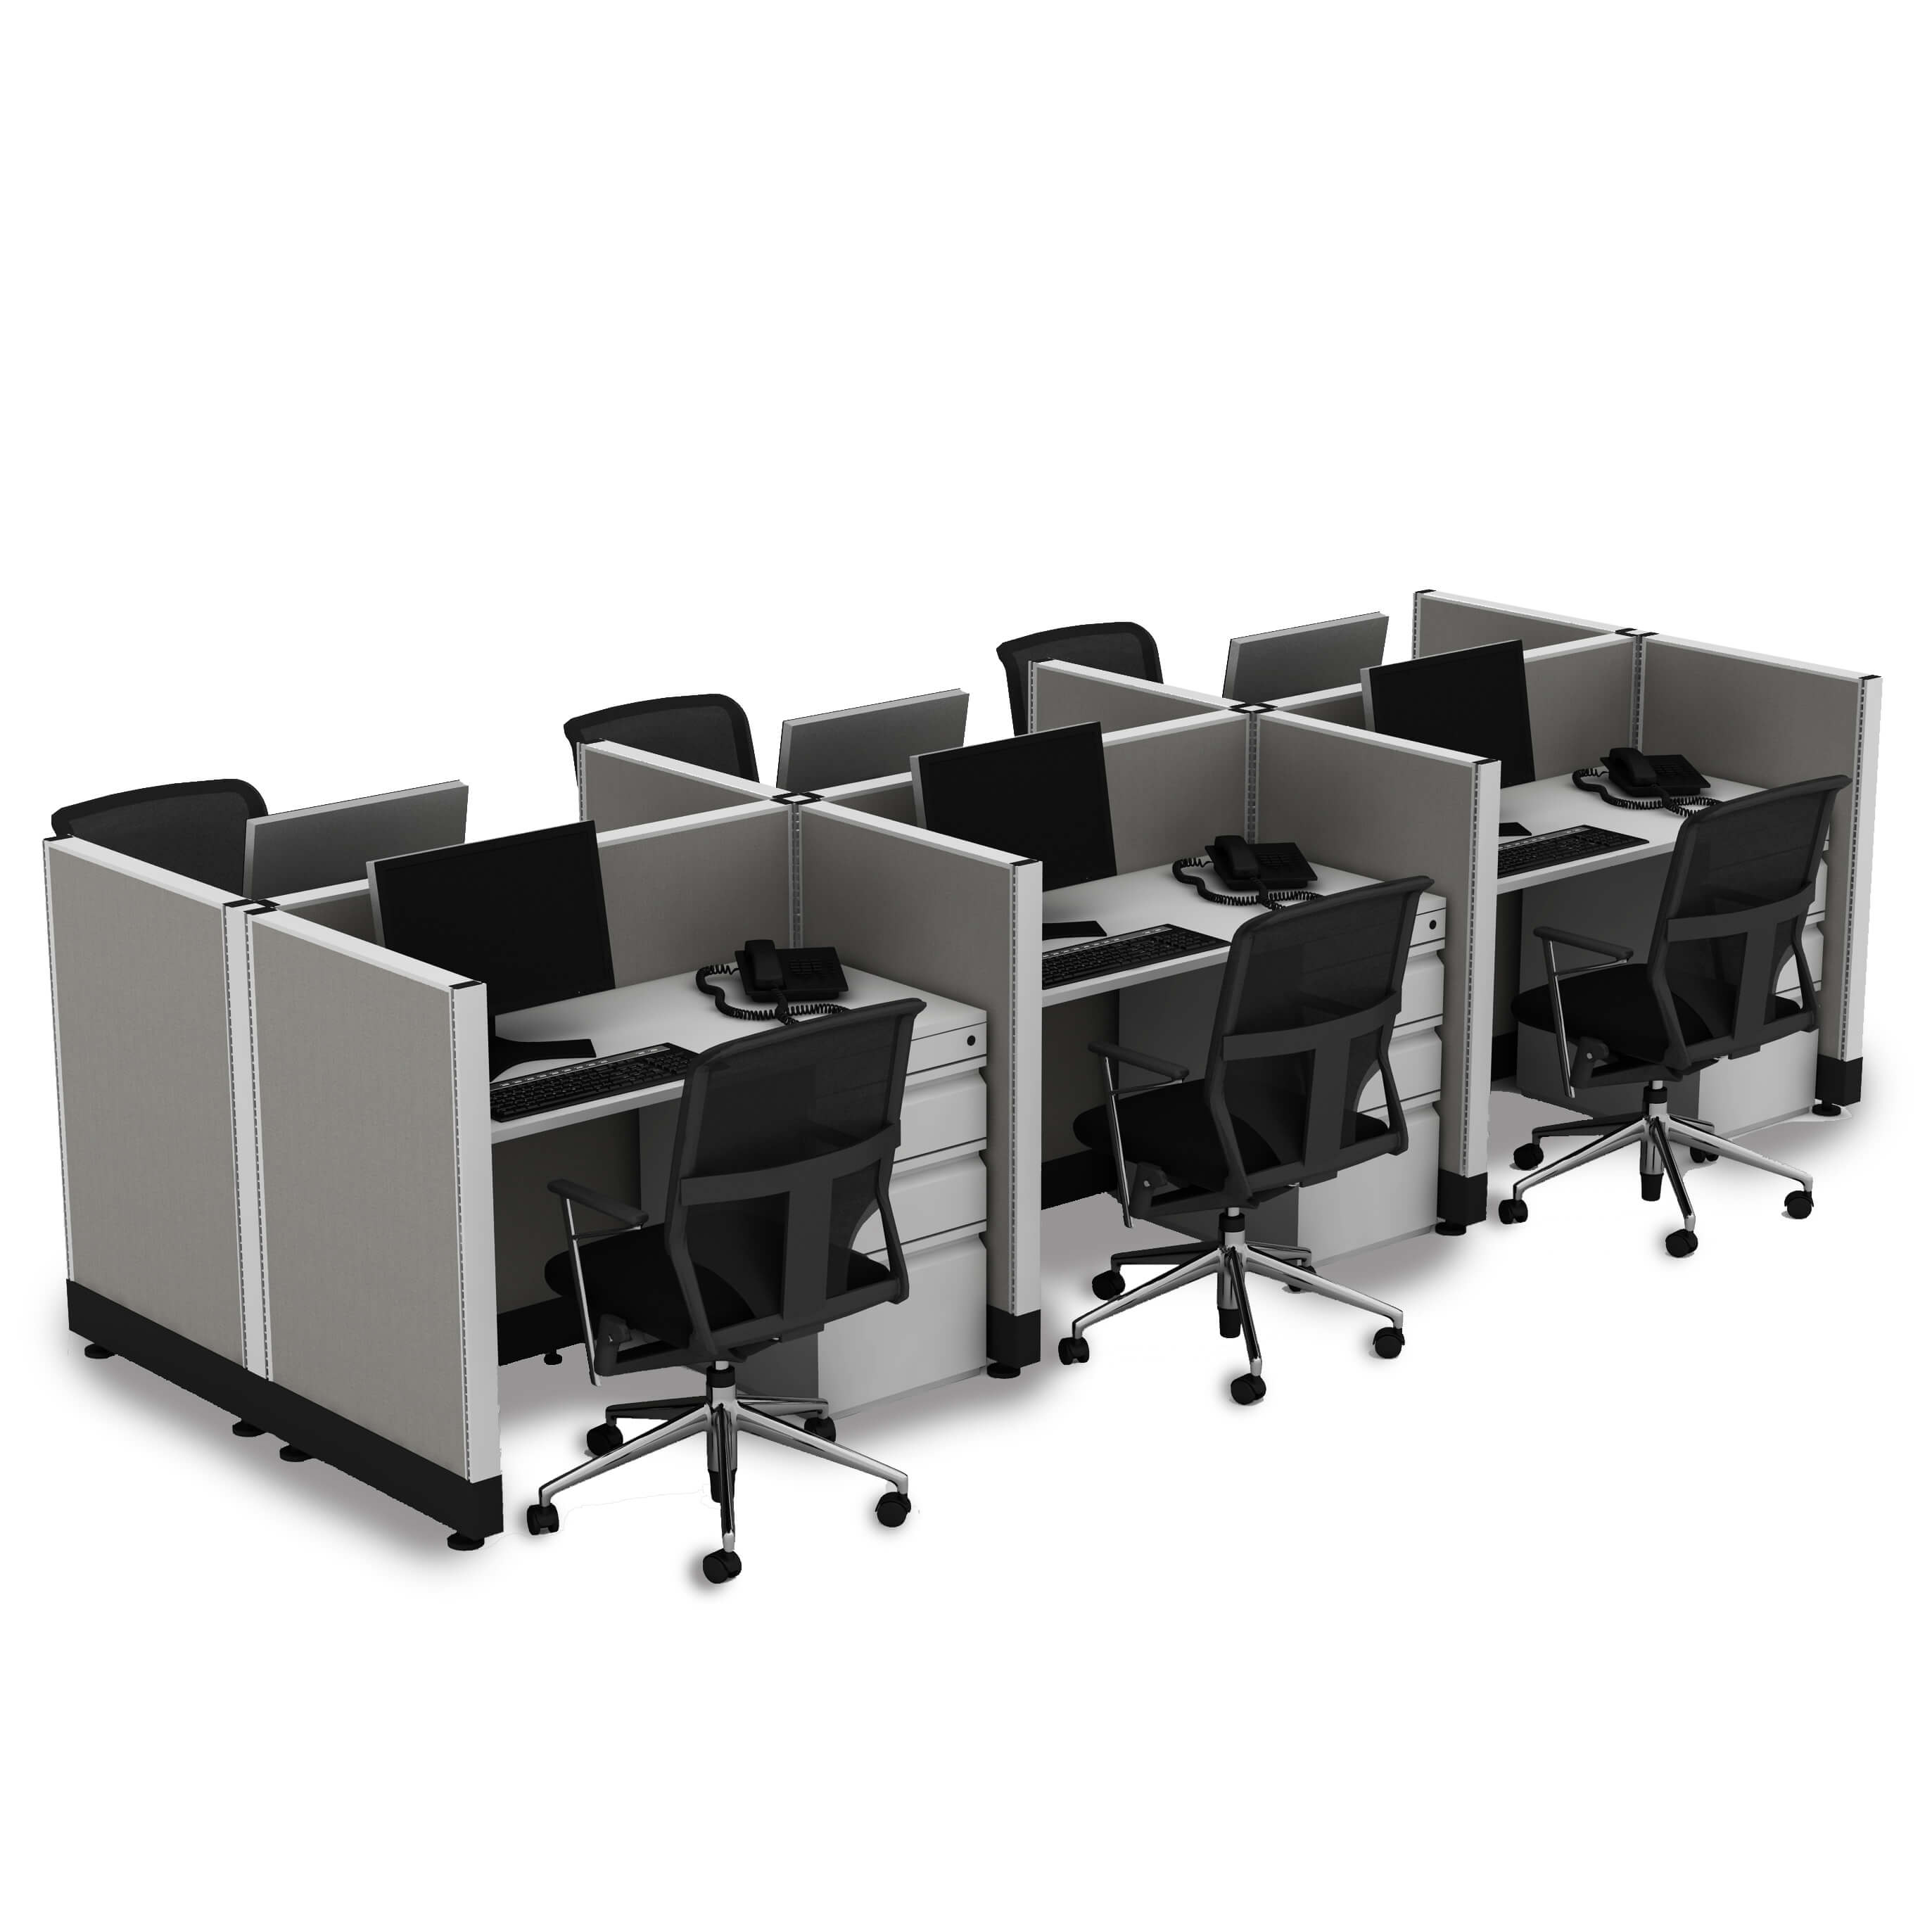 hot-desking-small-office-cubicles-6-pack.jpg